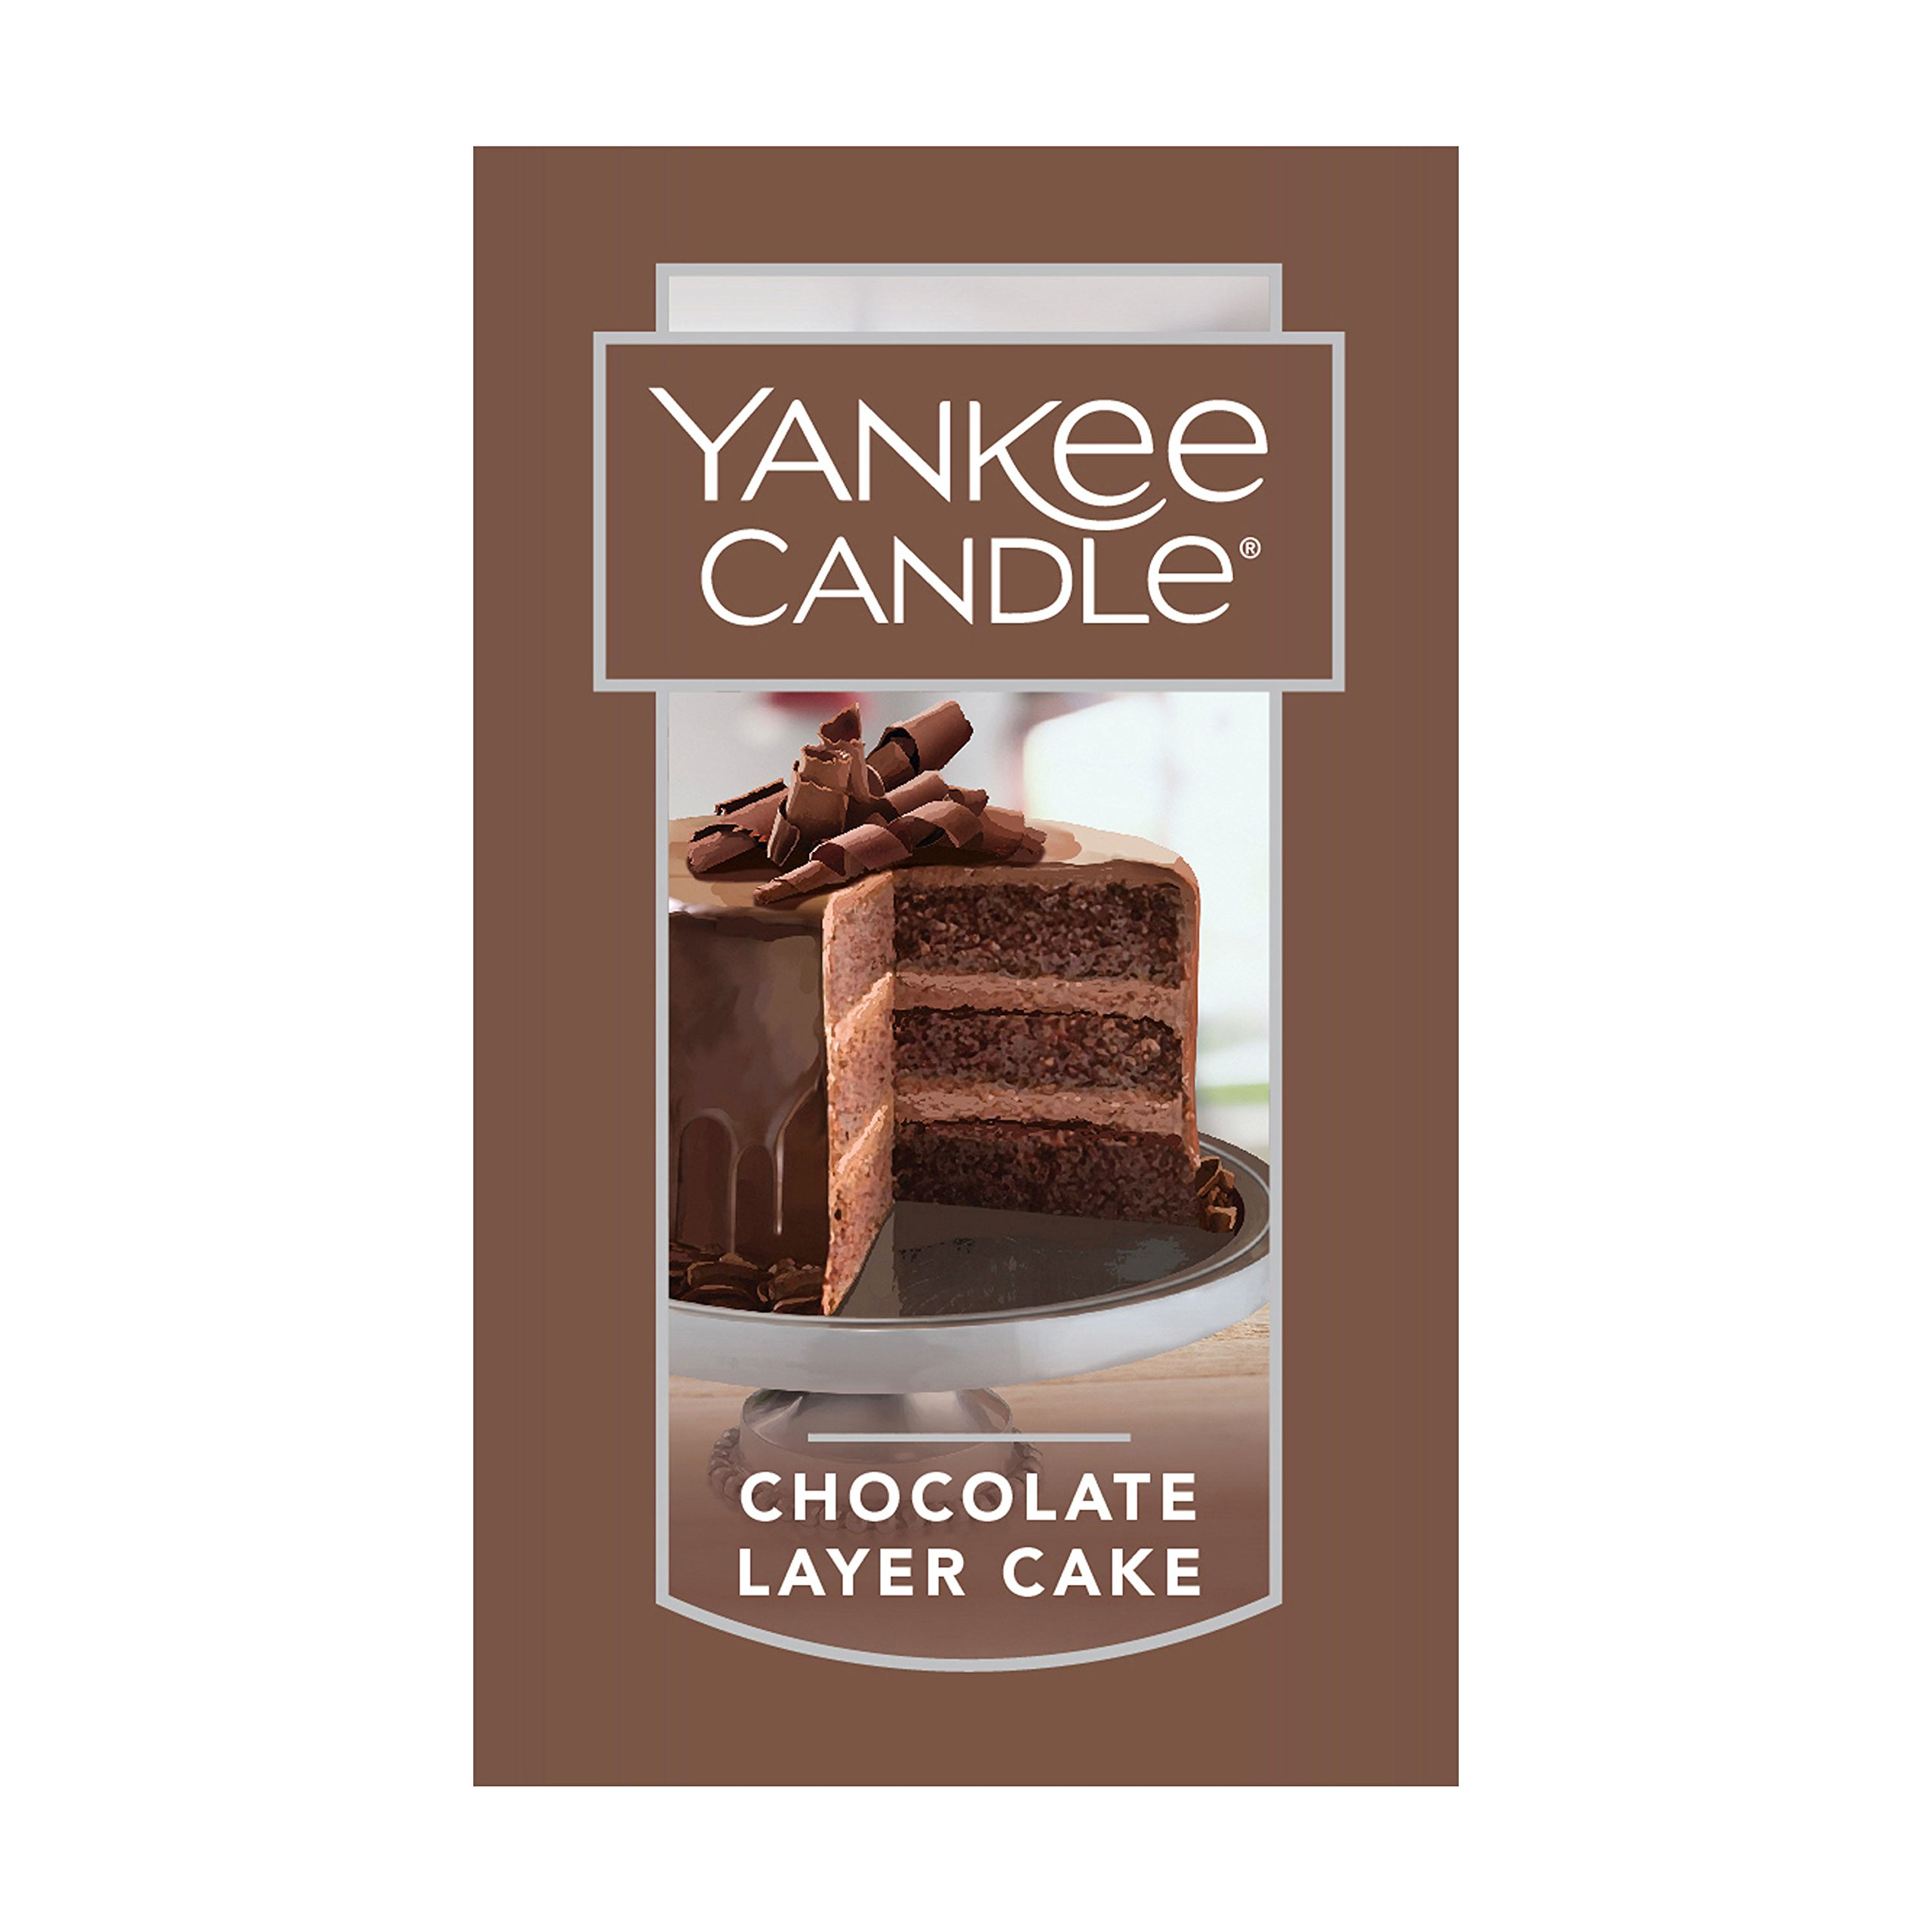 Yankee Candle Chocolate Layer Cake Scented Premium Paraffin Grade Candle Wax With Up To 150 Hour Burn Time Large Jar Home Kitchen